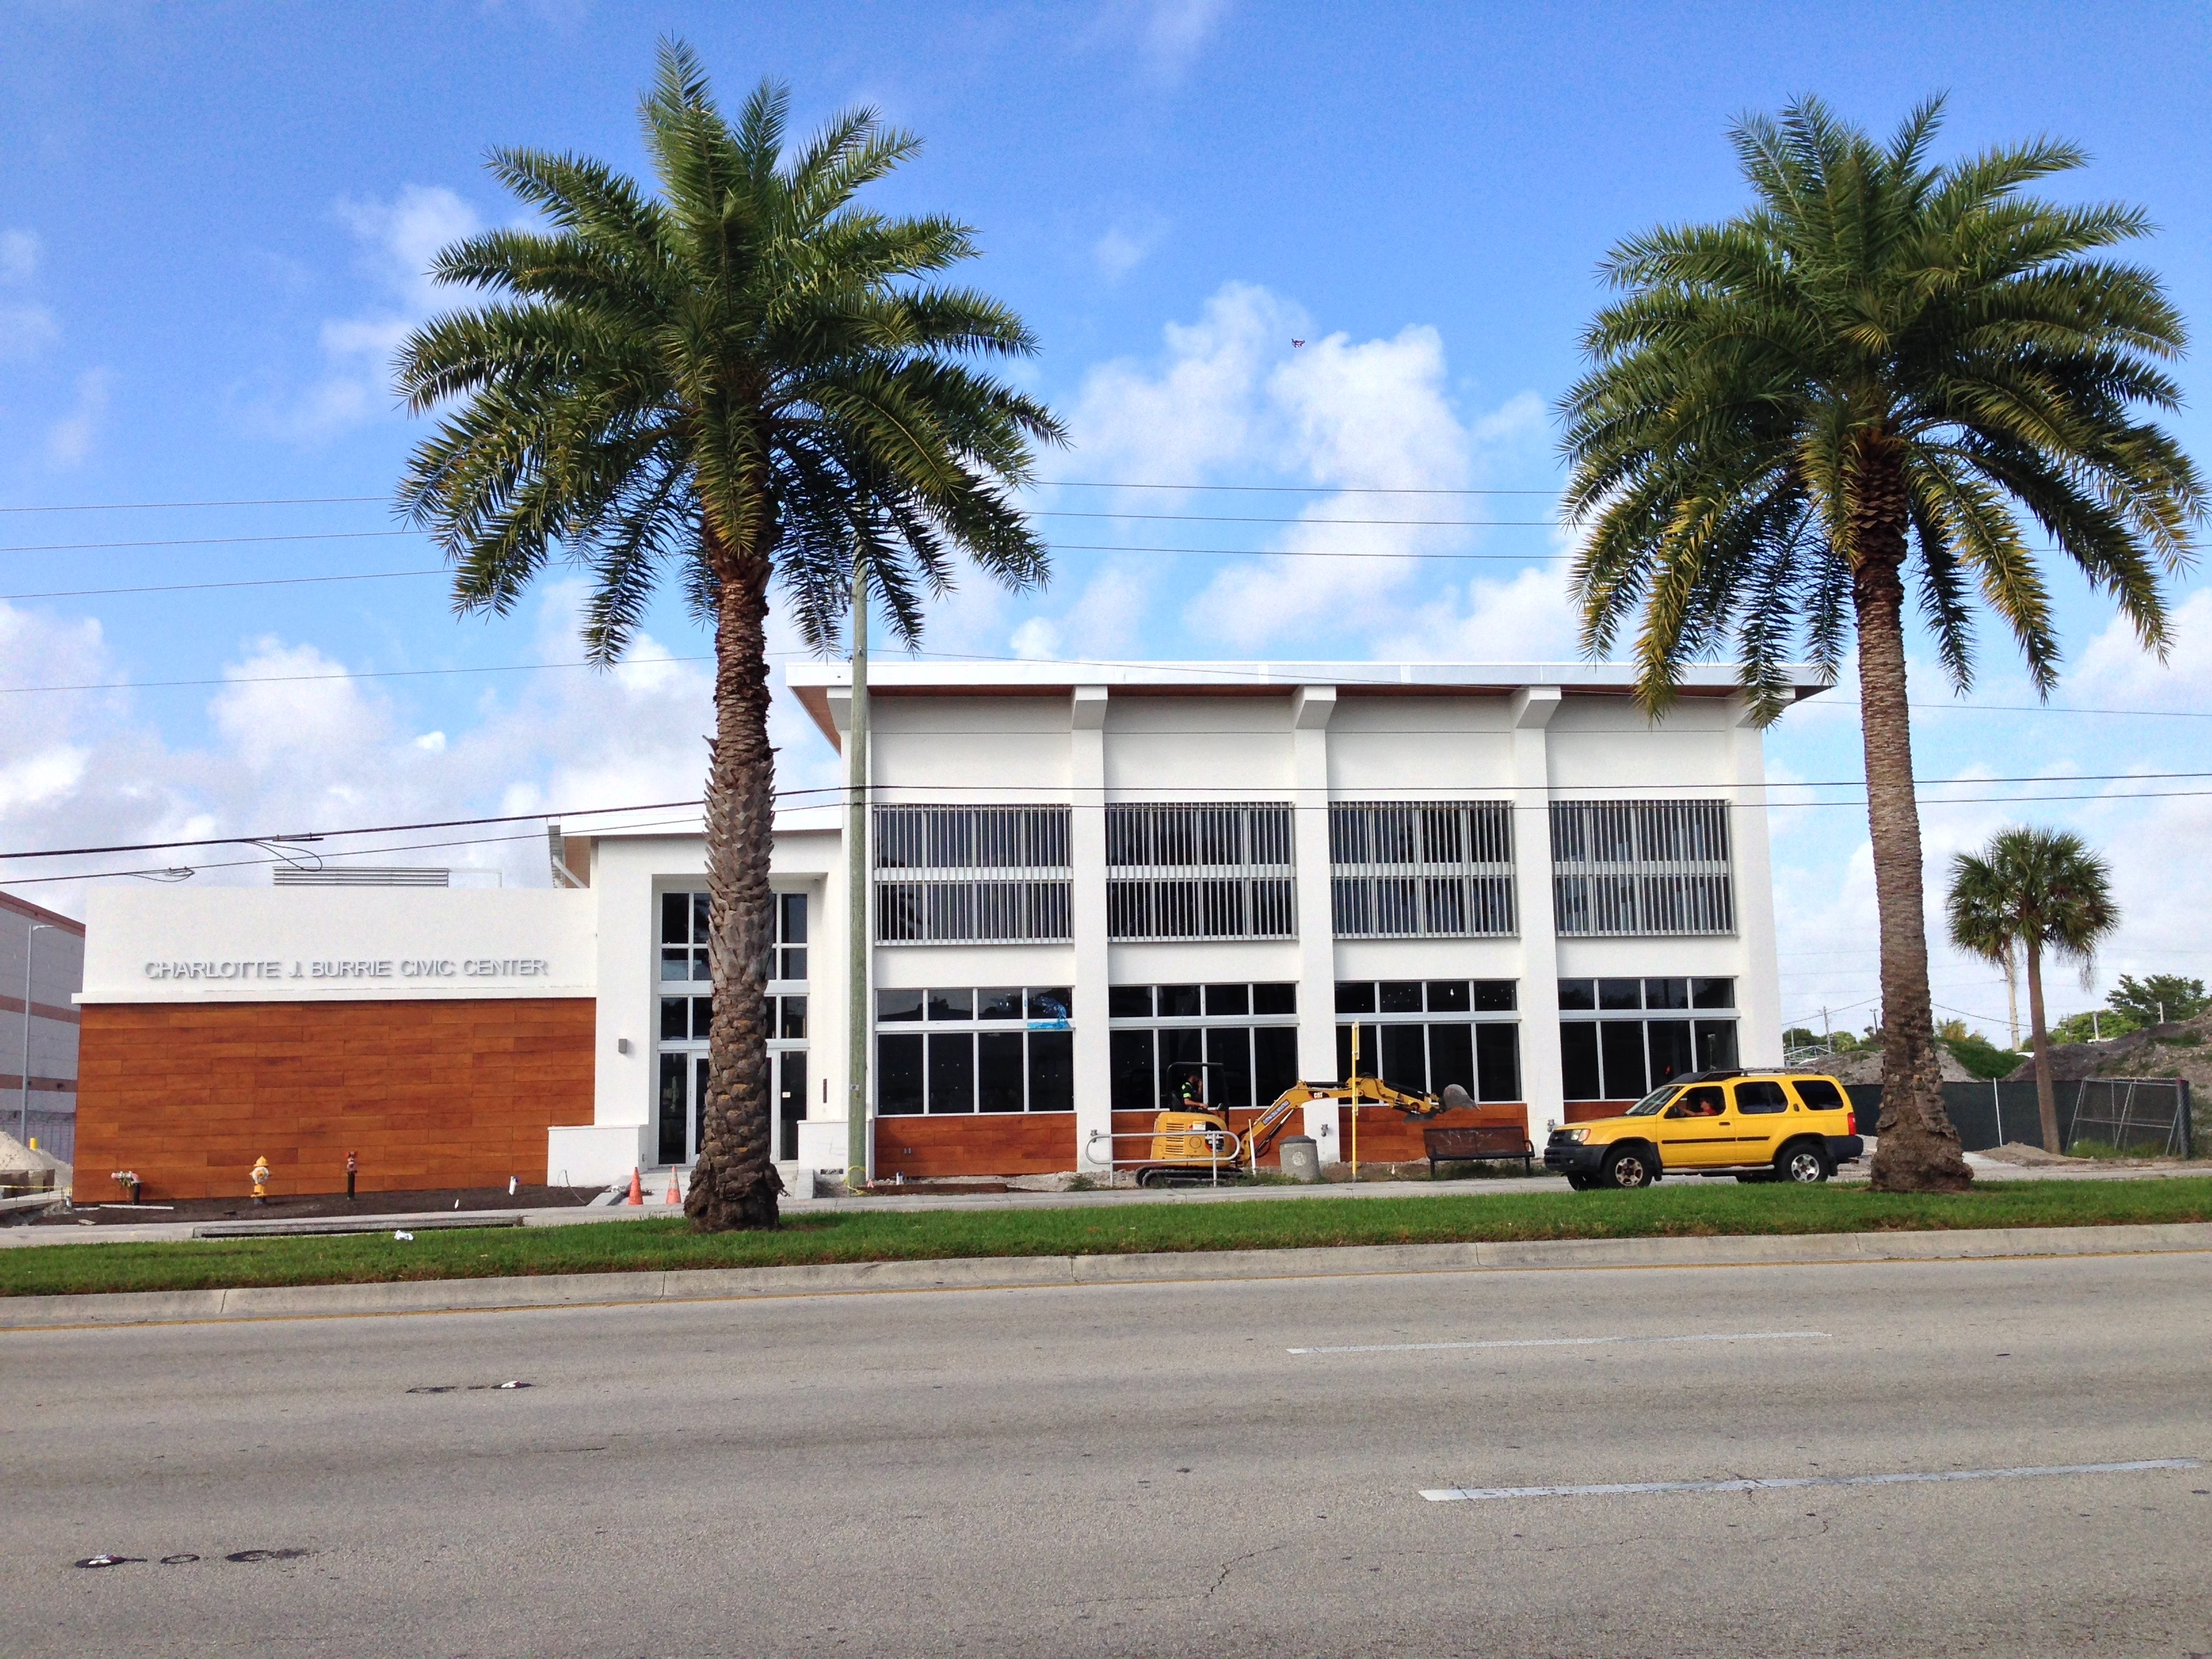 The Charlotte Burrie Civic Center main building In Pompano Beach